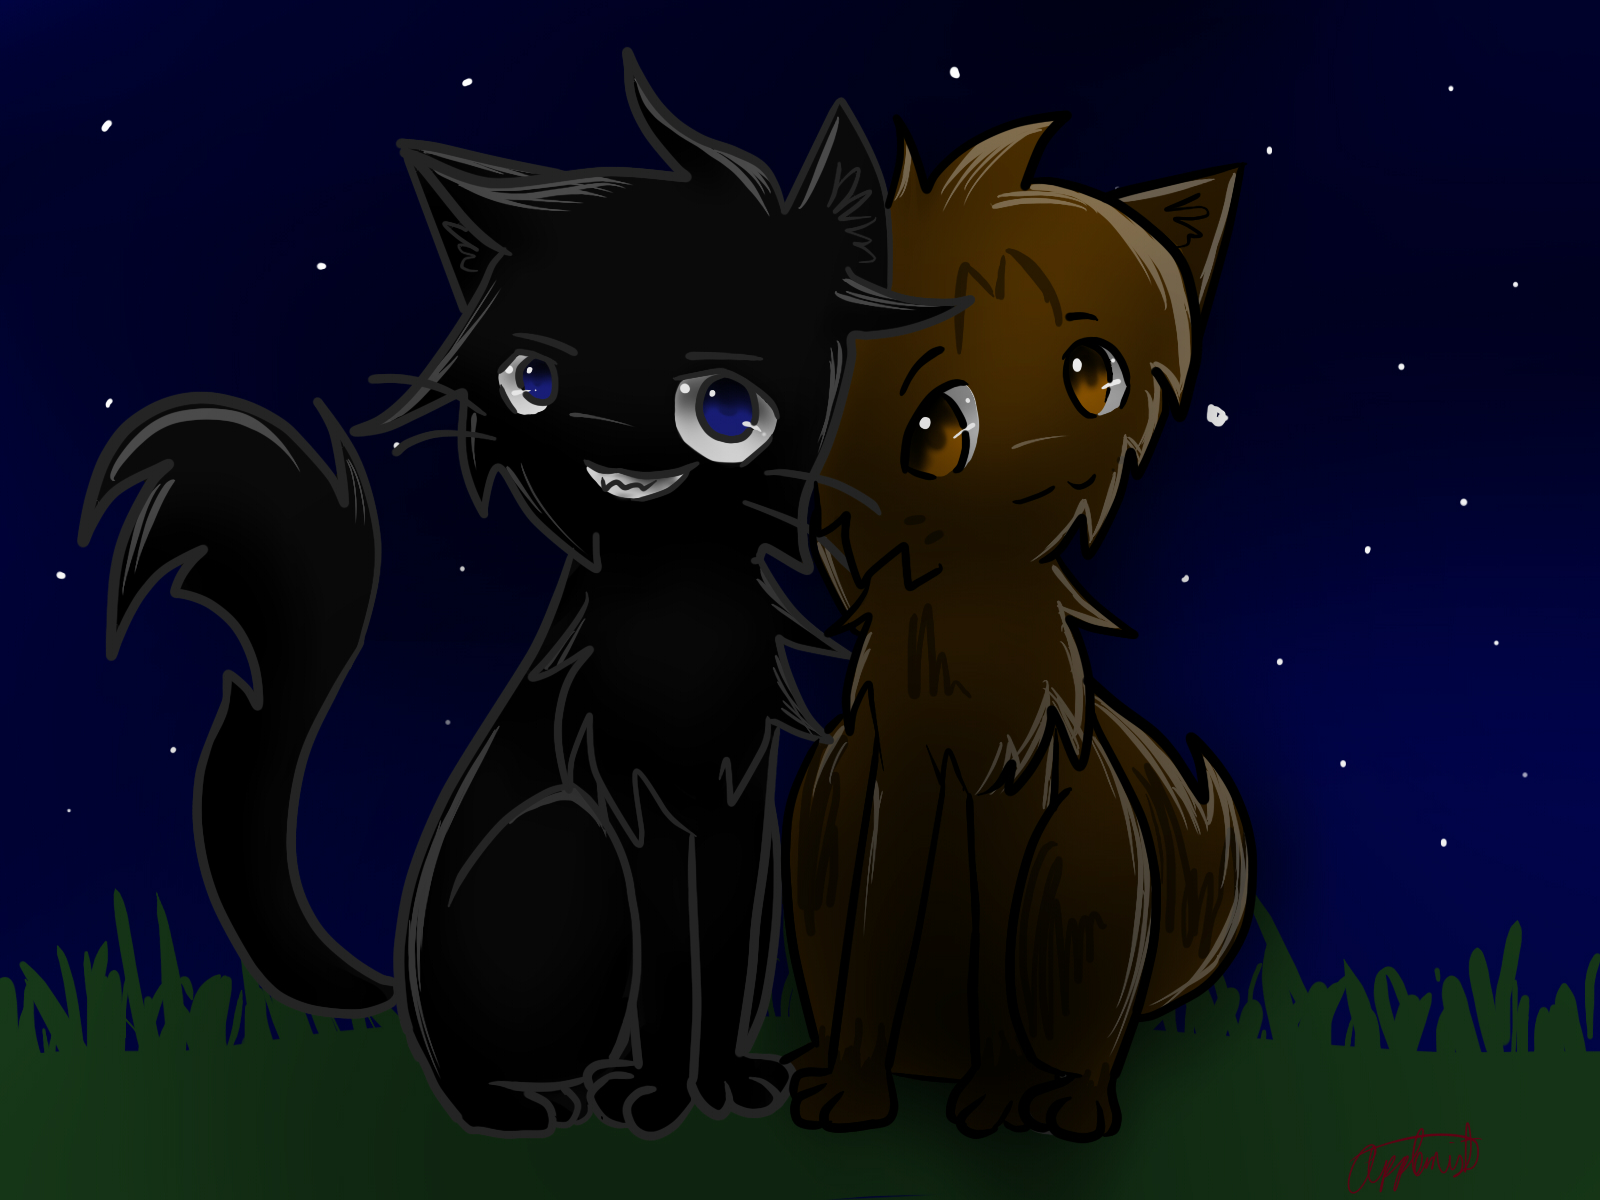 leafpool and crowfeather by applemist on deviantart